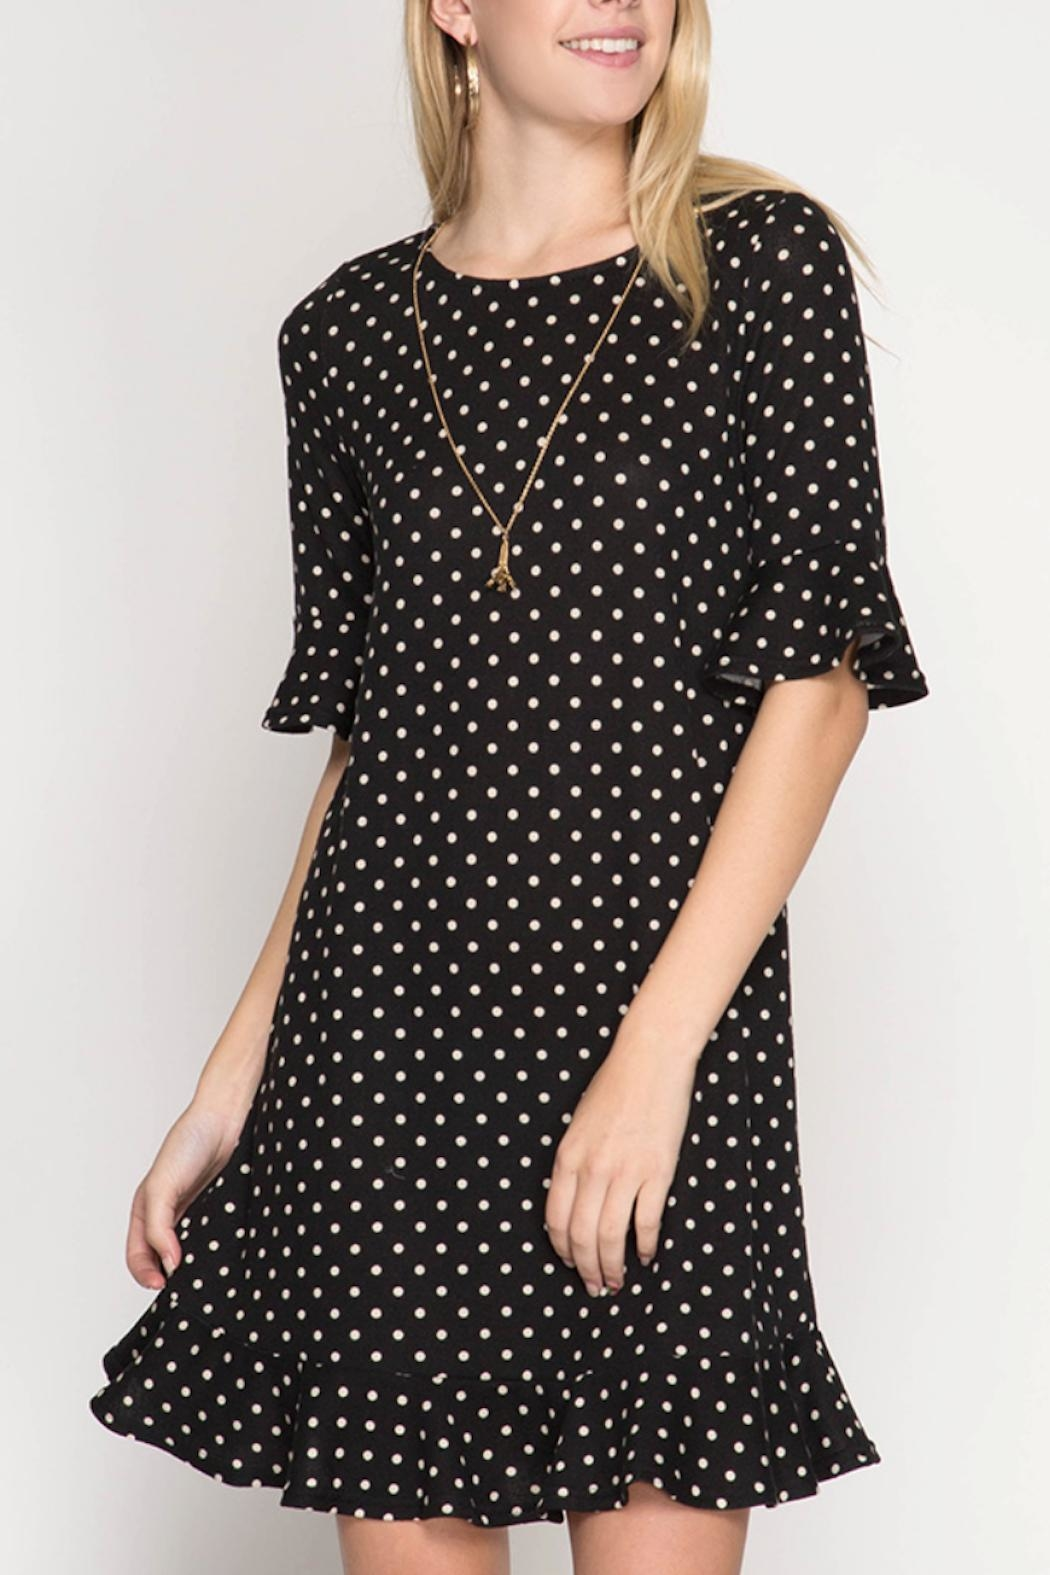 She + Sky Polka Dot Dress - Main Image